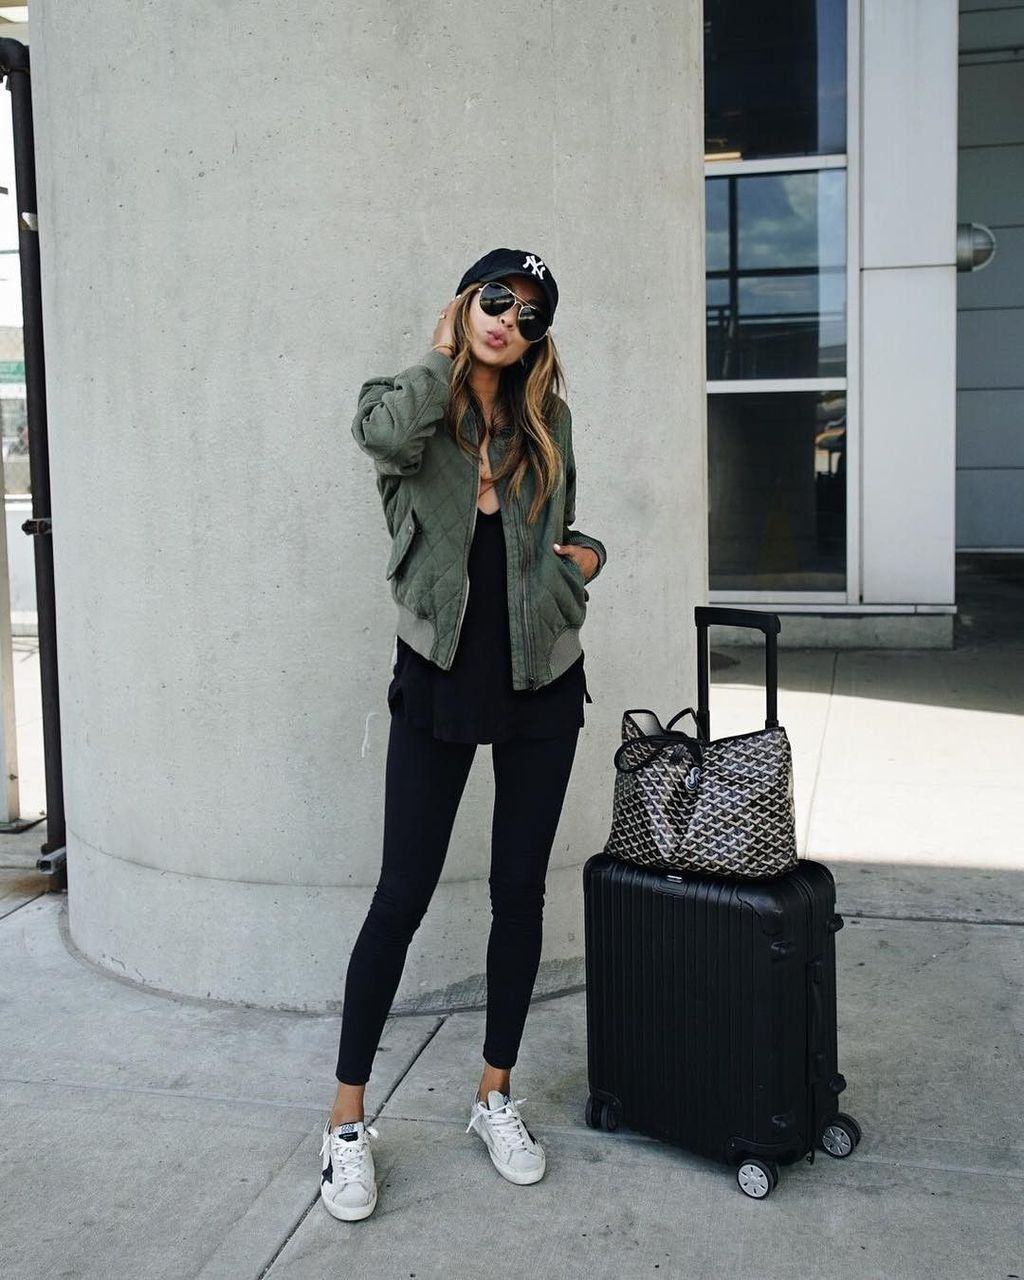 c73312de02e2 Bomber Jacket - The ultimate cool-girl airport outfit  Sincerely Jules   olive green bomber jacket and black legging combo.